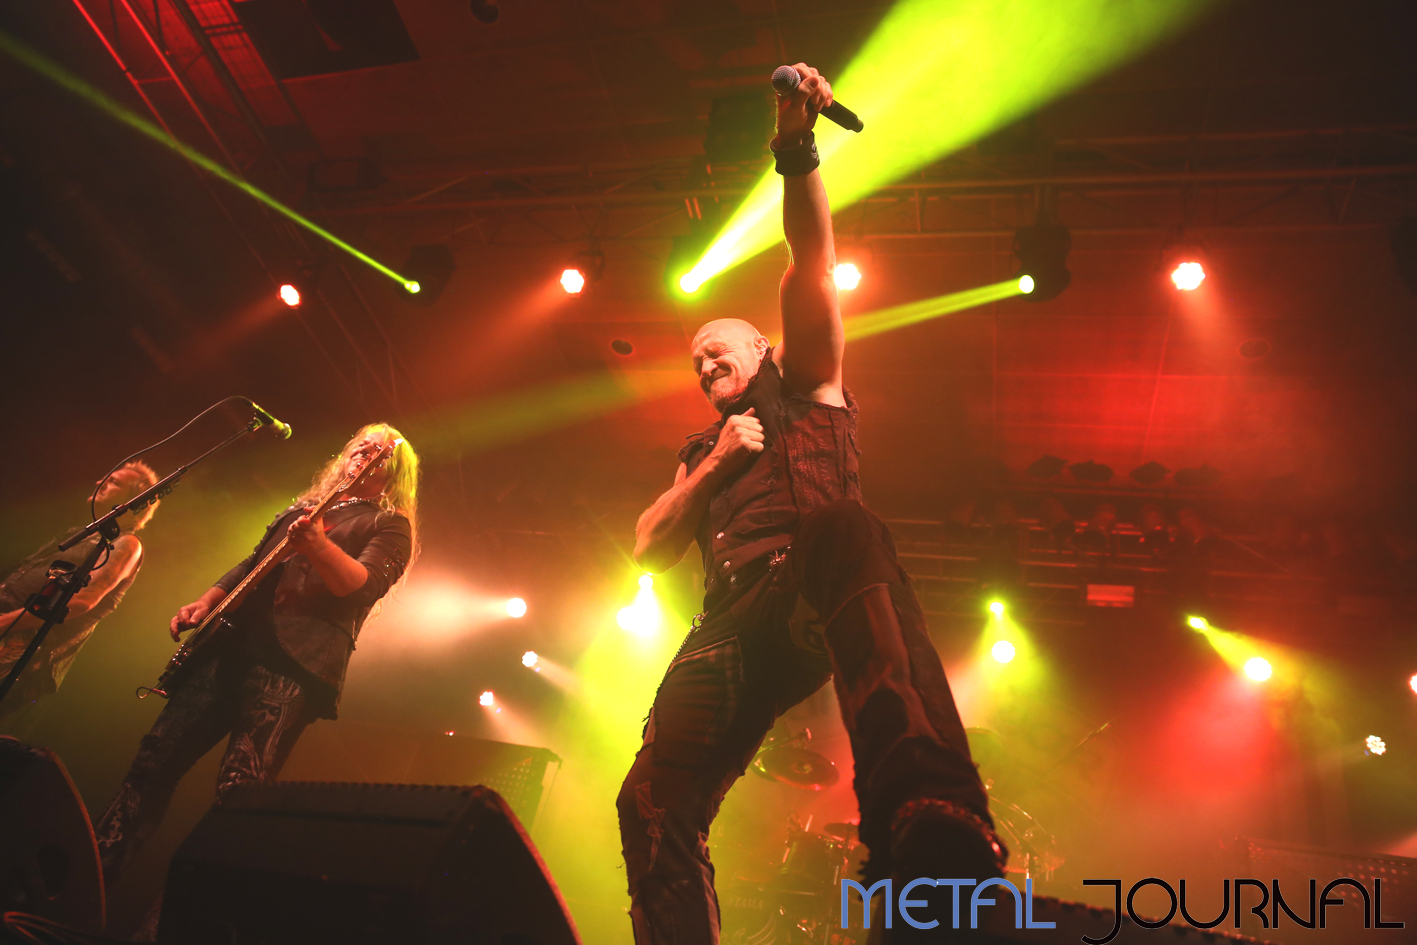 primal fear - metal journal bilbao 2018 pic 6